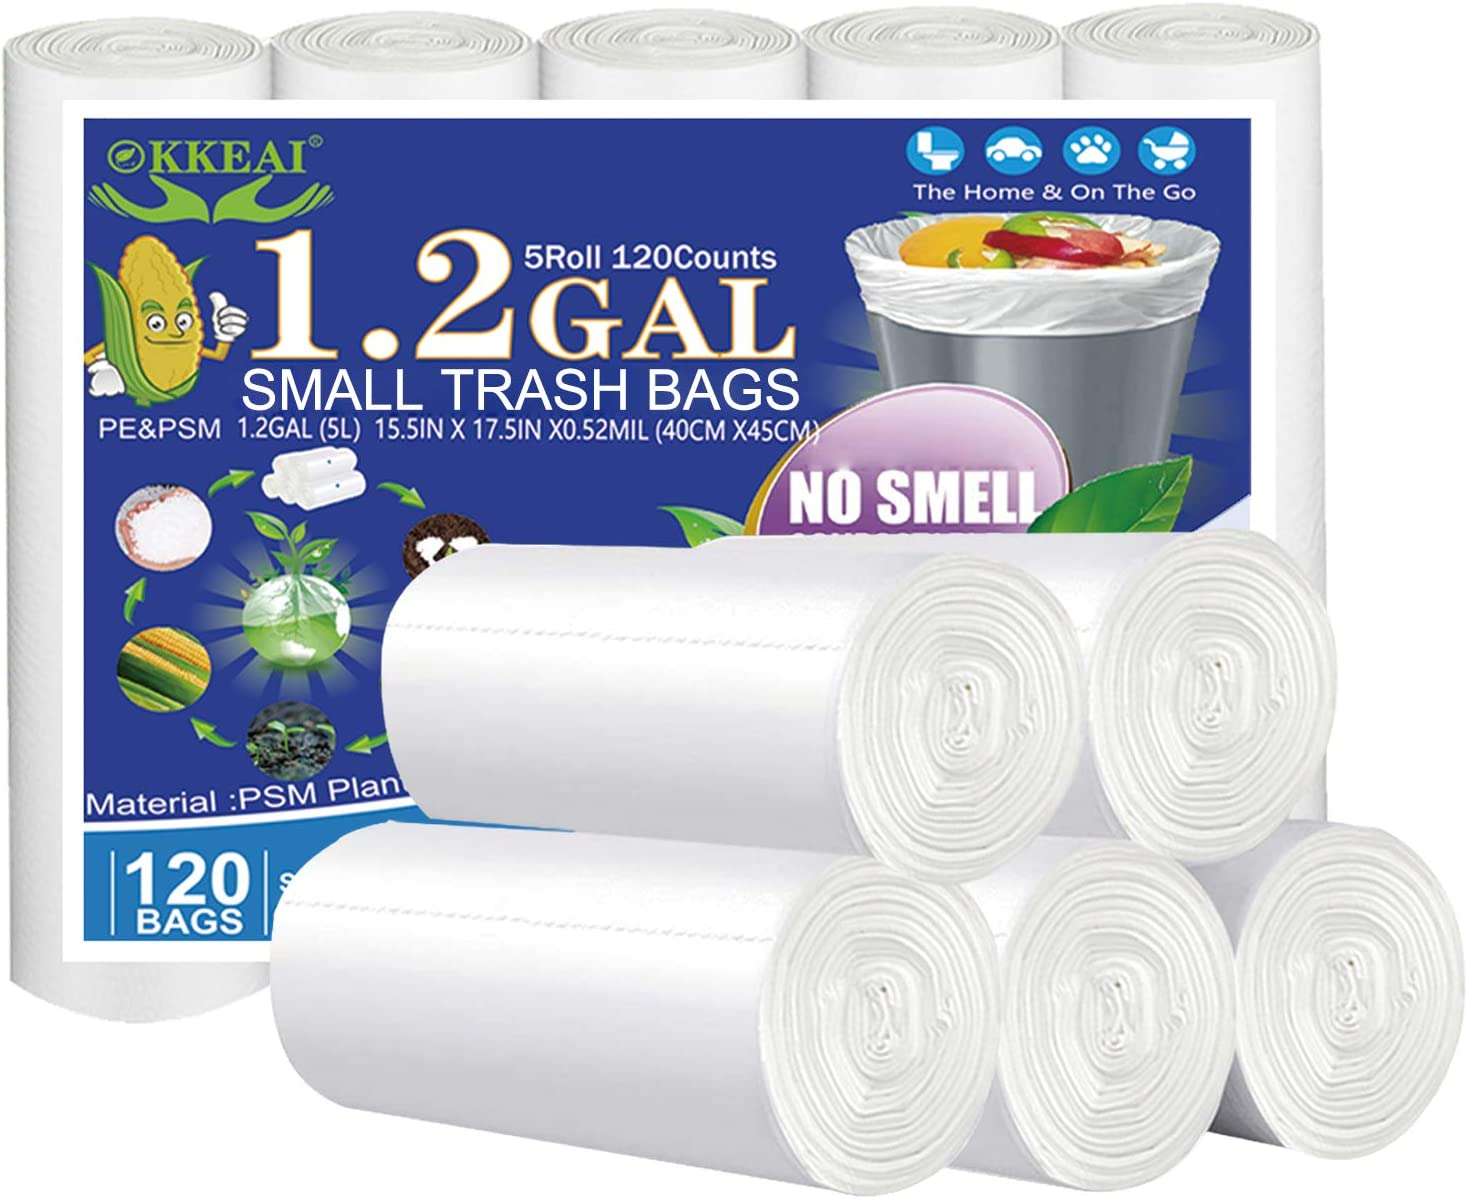 OKKEAI Small Trash Bags -1.2 Gallon Biodegradable Garbage Bags 5 Liter Trash Can Bags Wastebasket Liners for Bathroom,Office,Translucent,120 Counts Fit 5L 1.2,1.5,2Gal